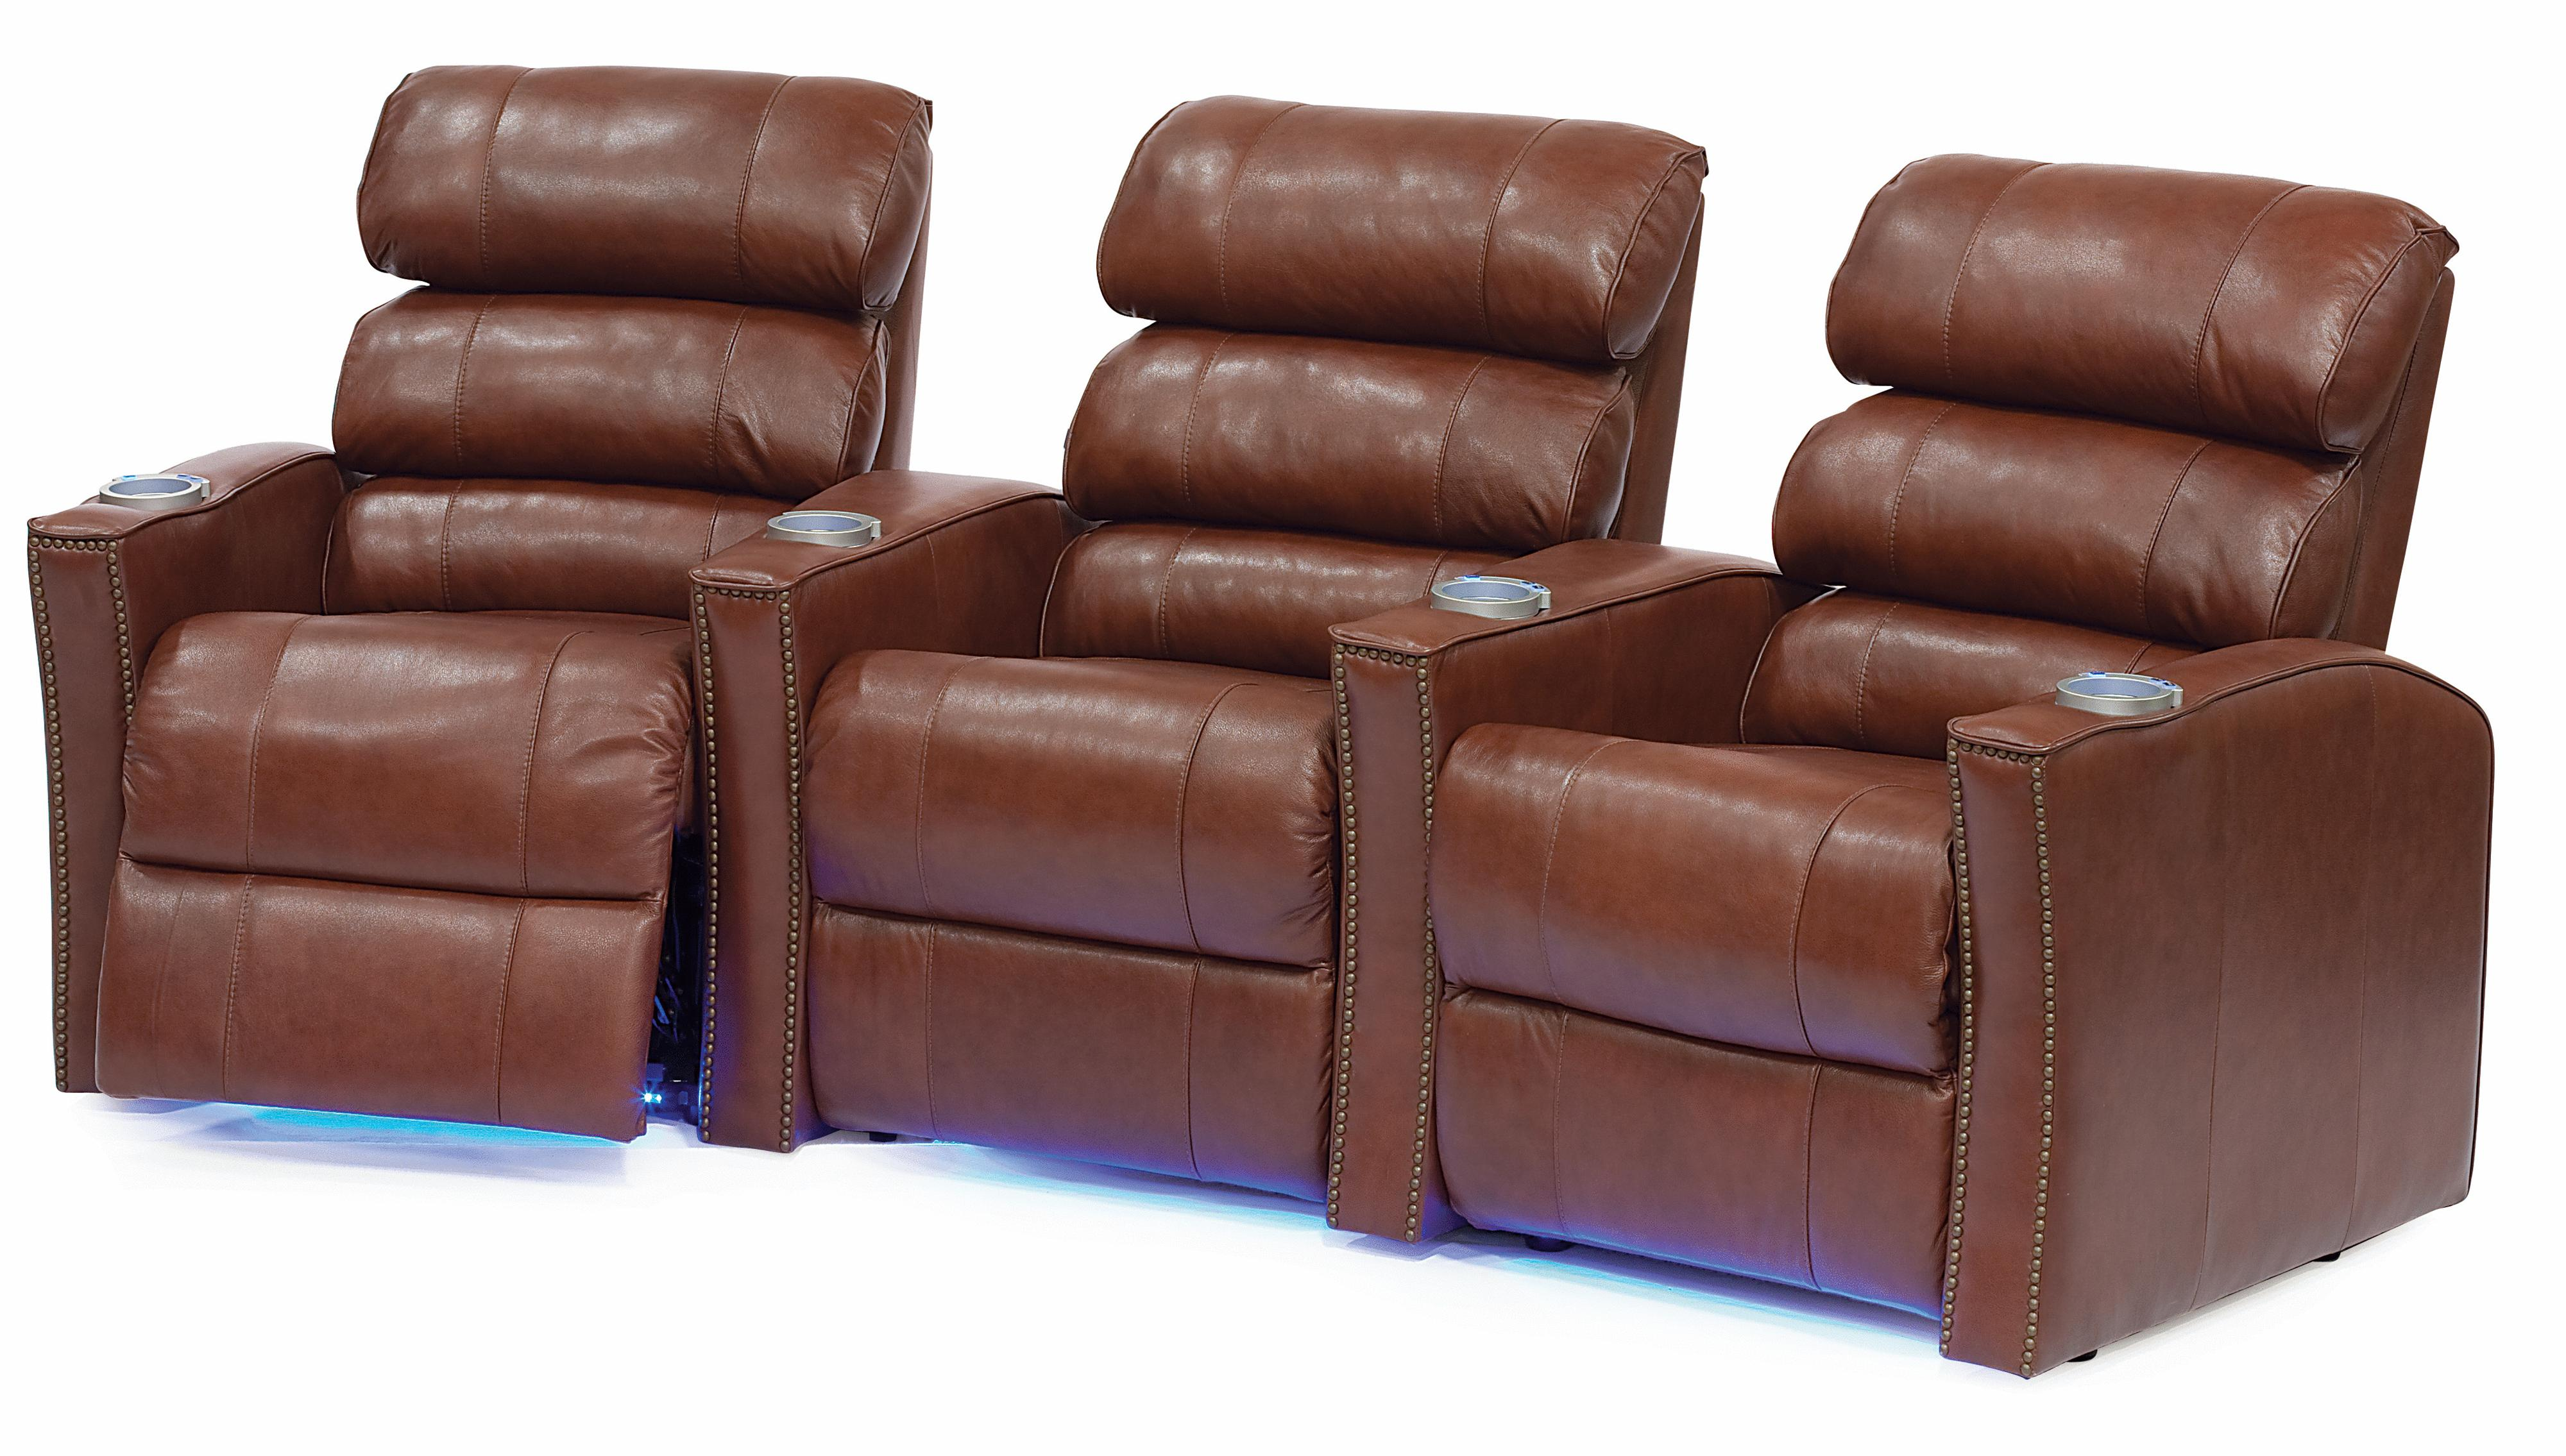 Palliser Feedback Reclining Home Theater Seating - Item Number: 41457-3R-5R-7R